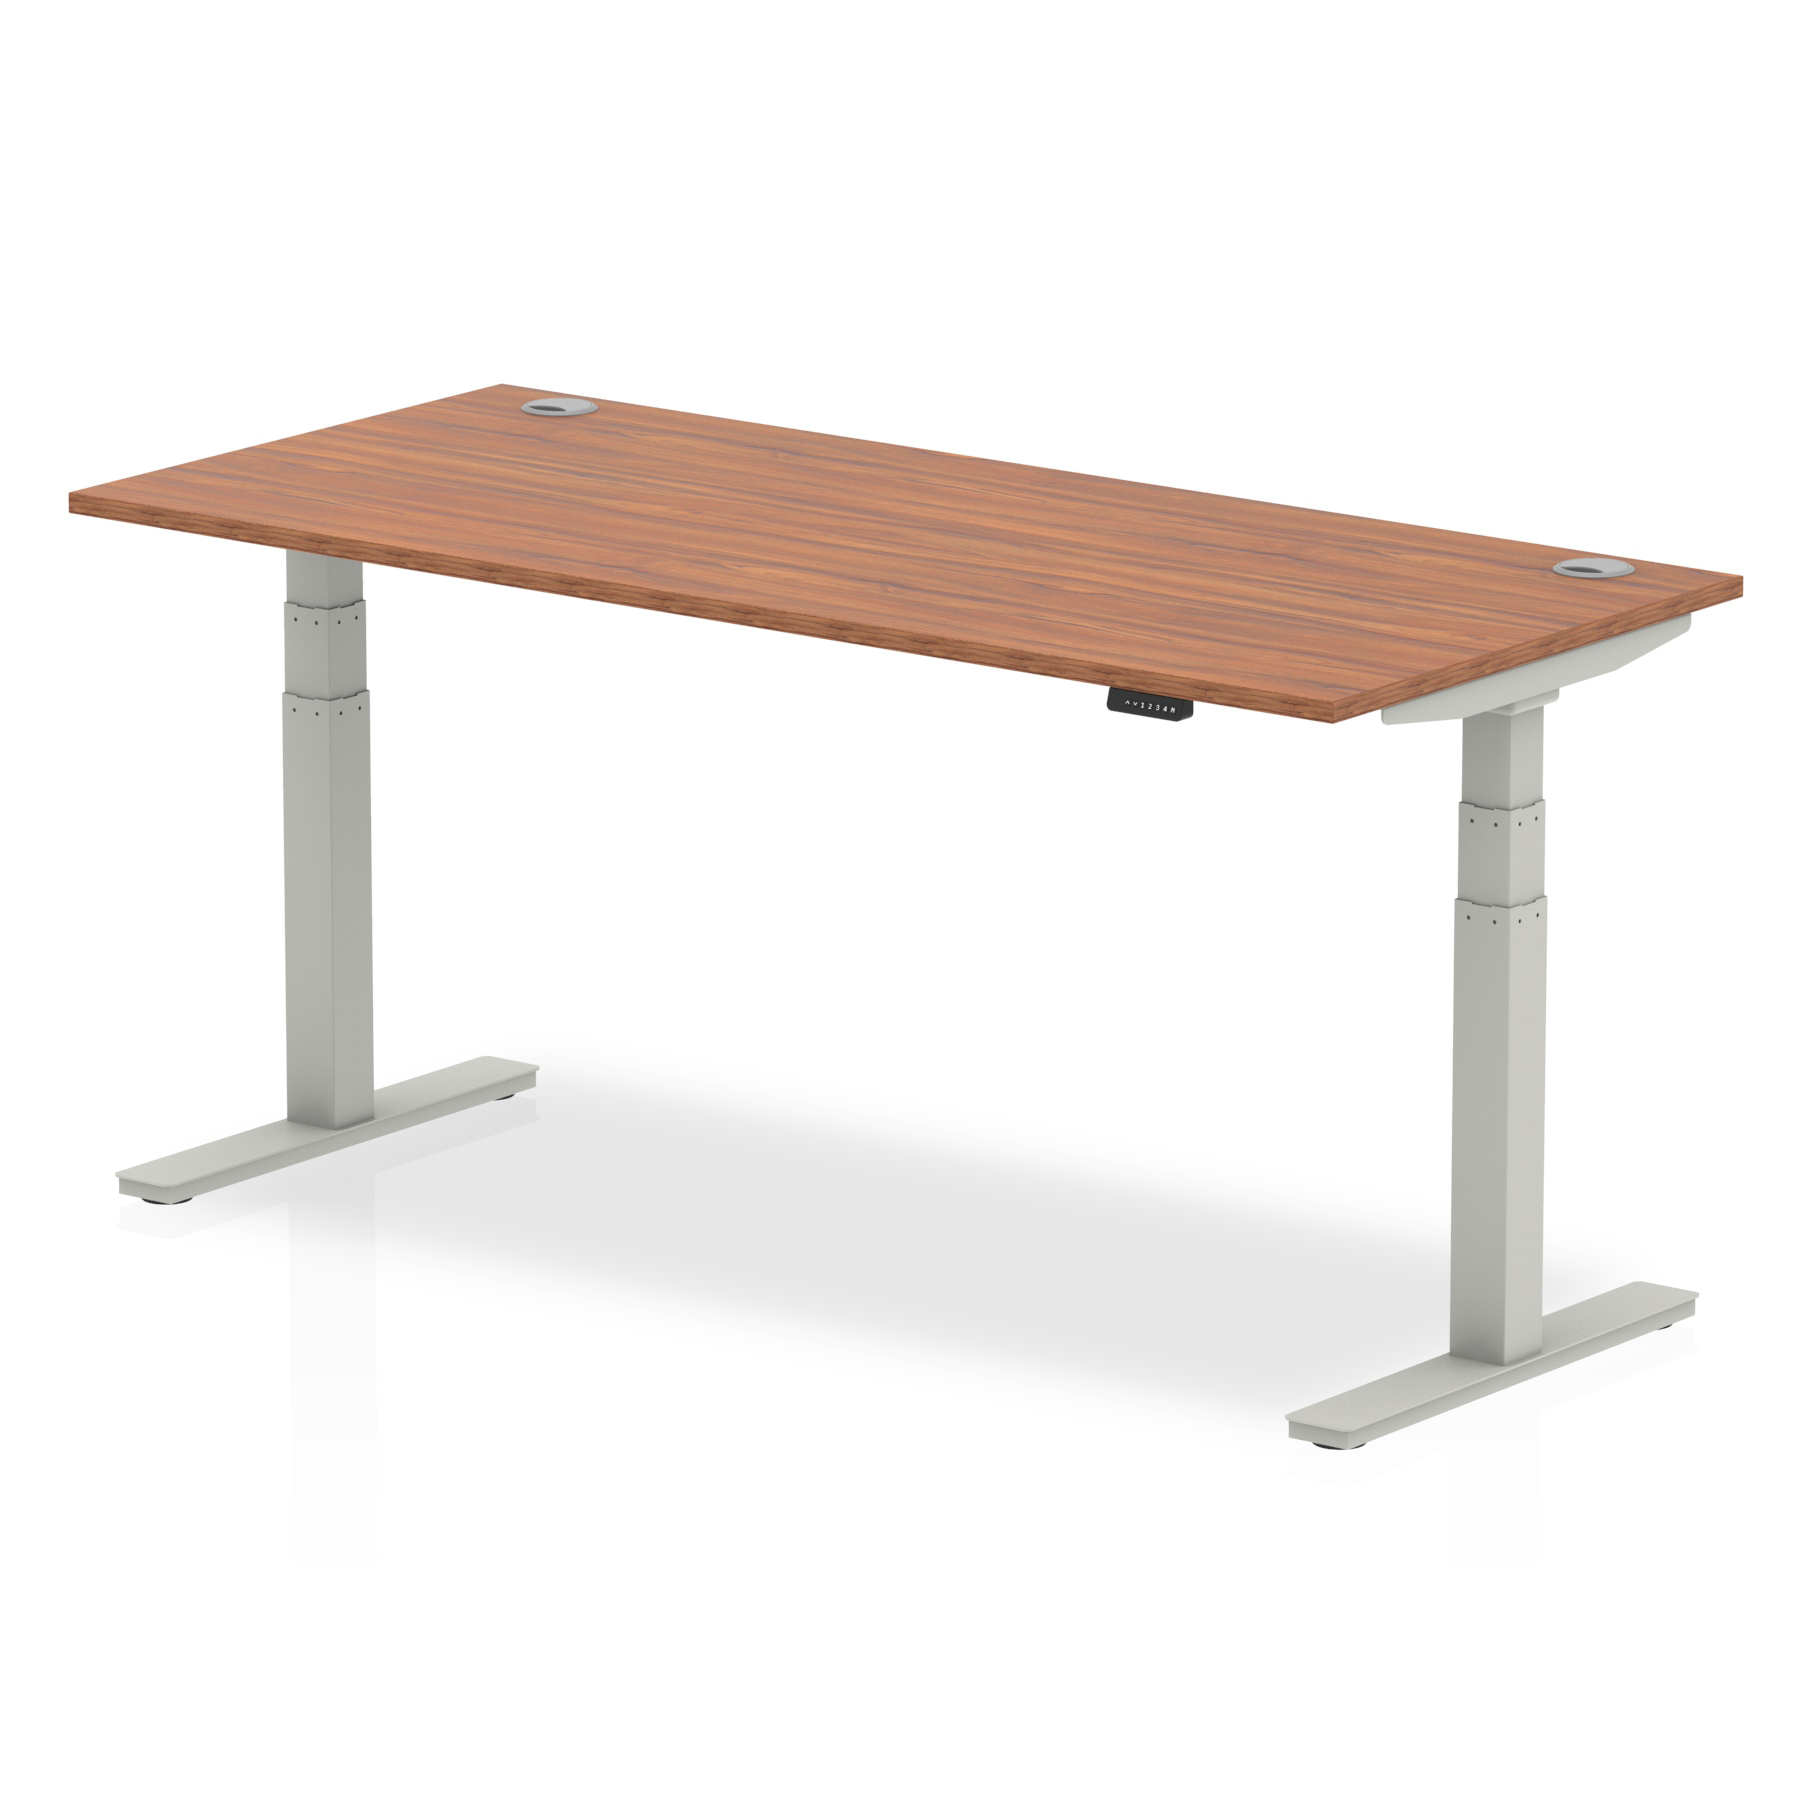 Trexus Sit Stand Desk With Cable Ports Silver Legs 1800x800mm Walnut Ref HA01088